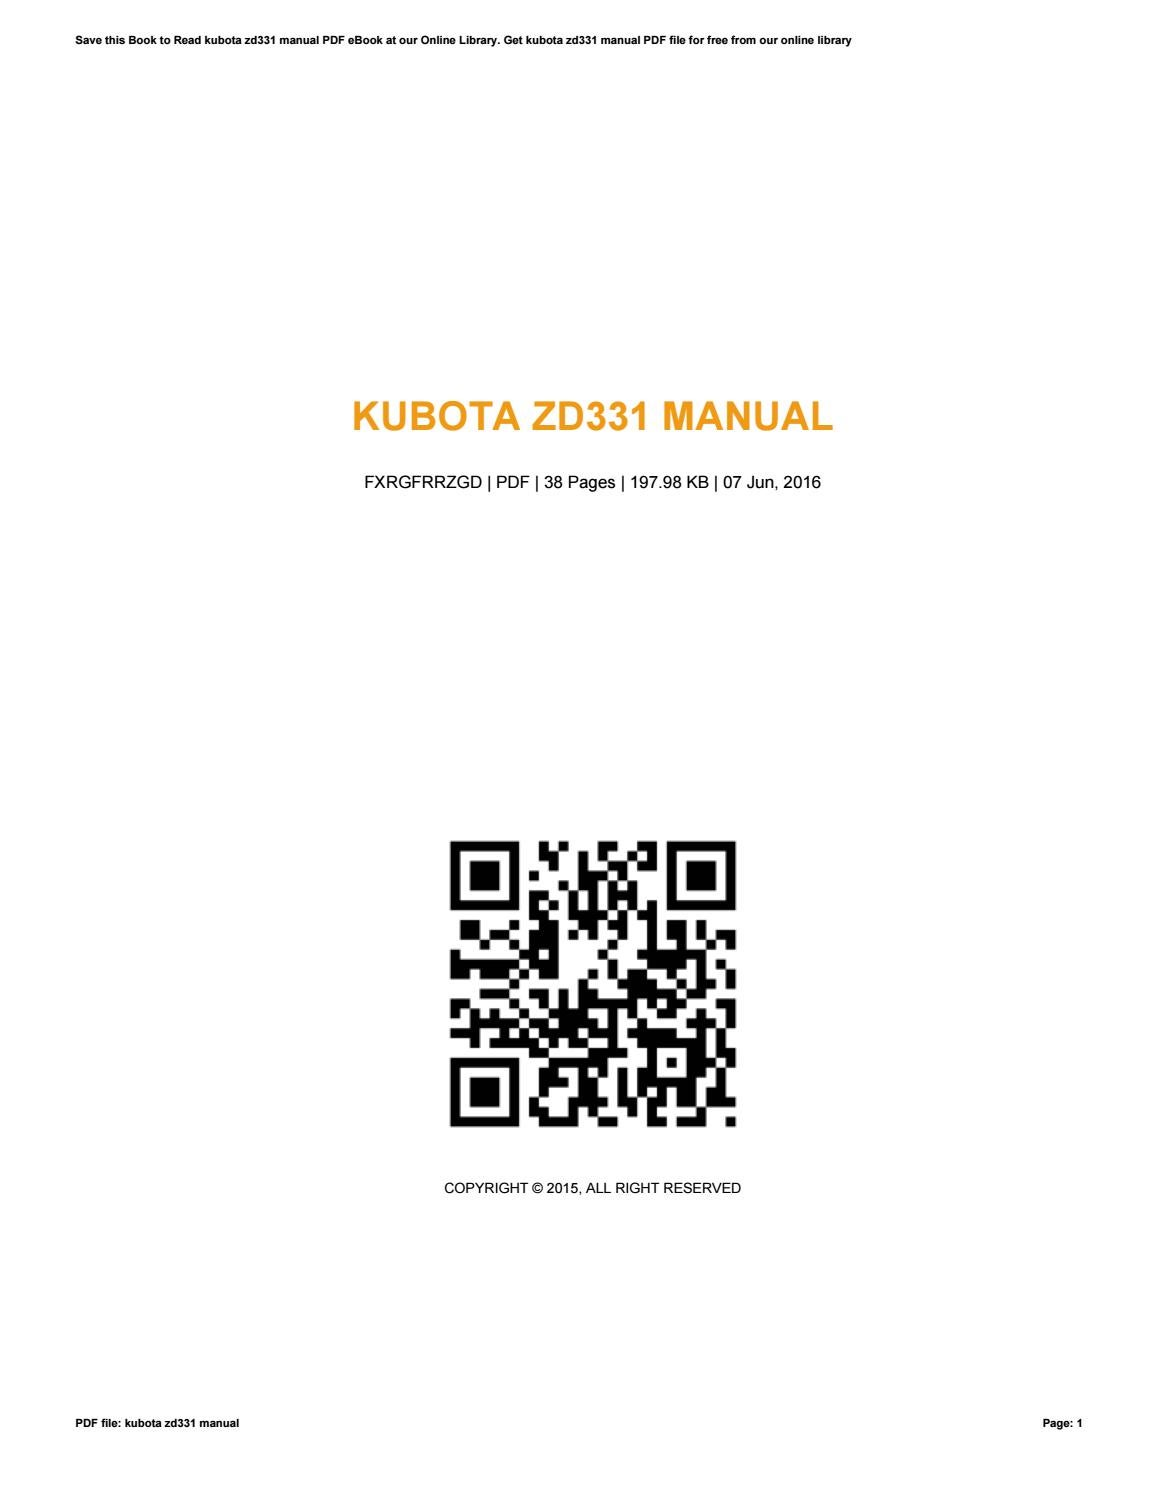 B4293 Kubota Zd331 Wiring Diagrams | Digital Resources on kubota l3800, kubota 72 inch mower, kubota 60 inch mower belt, kubota snow plow, kubota mower parts lookup, kubota l3940, kubota landscape rake, kubota zg striping kit for, kubota zero turn prices, kubota zero turn mowers, kubota front loader, kubota rtv900, kubota zd221 service manual,